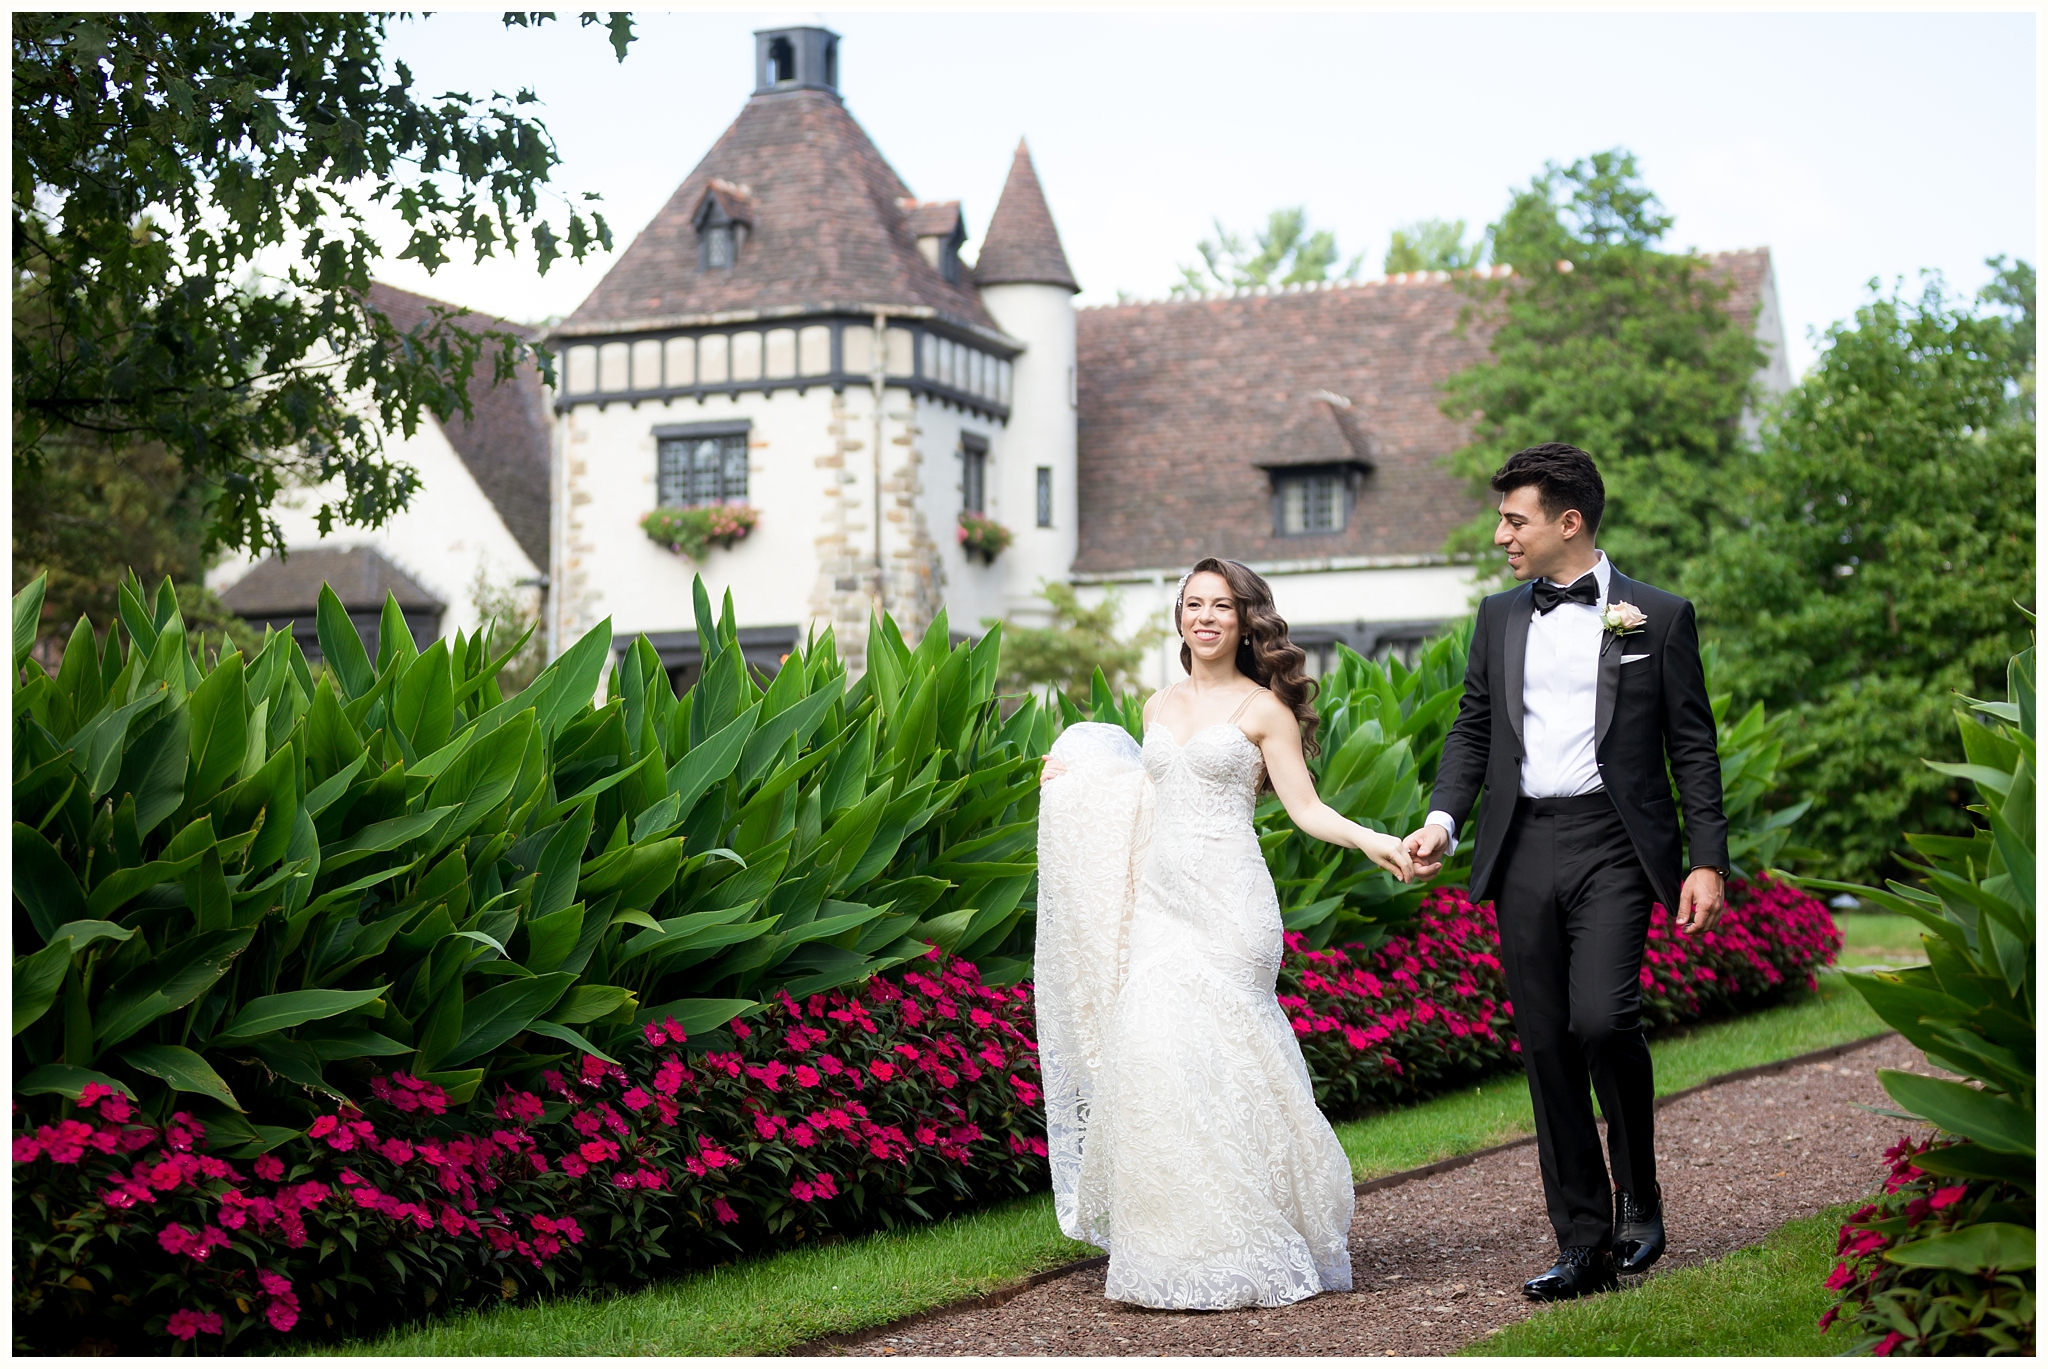 Pleasantdale Chateau Wedding NJ Wedding NYC Wedding Photographer_0015.jpg